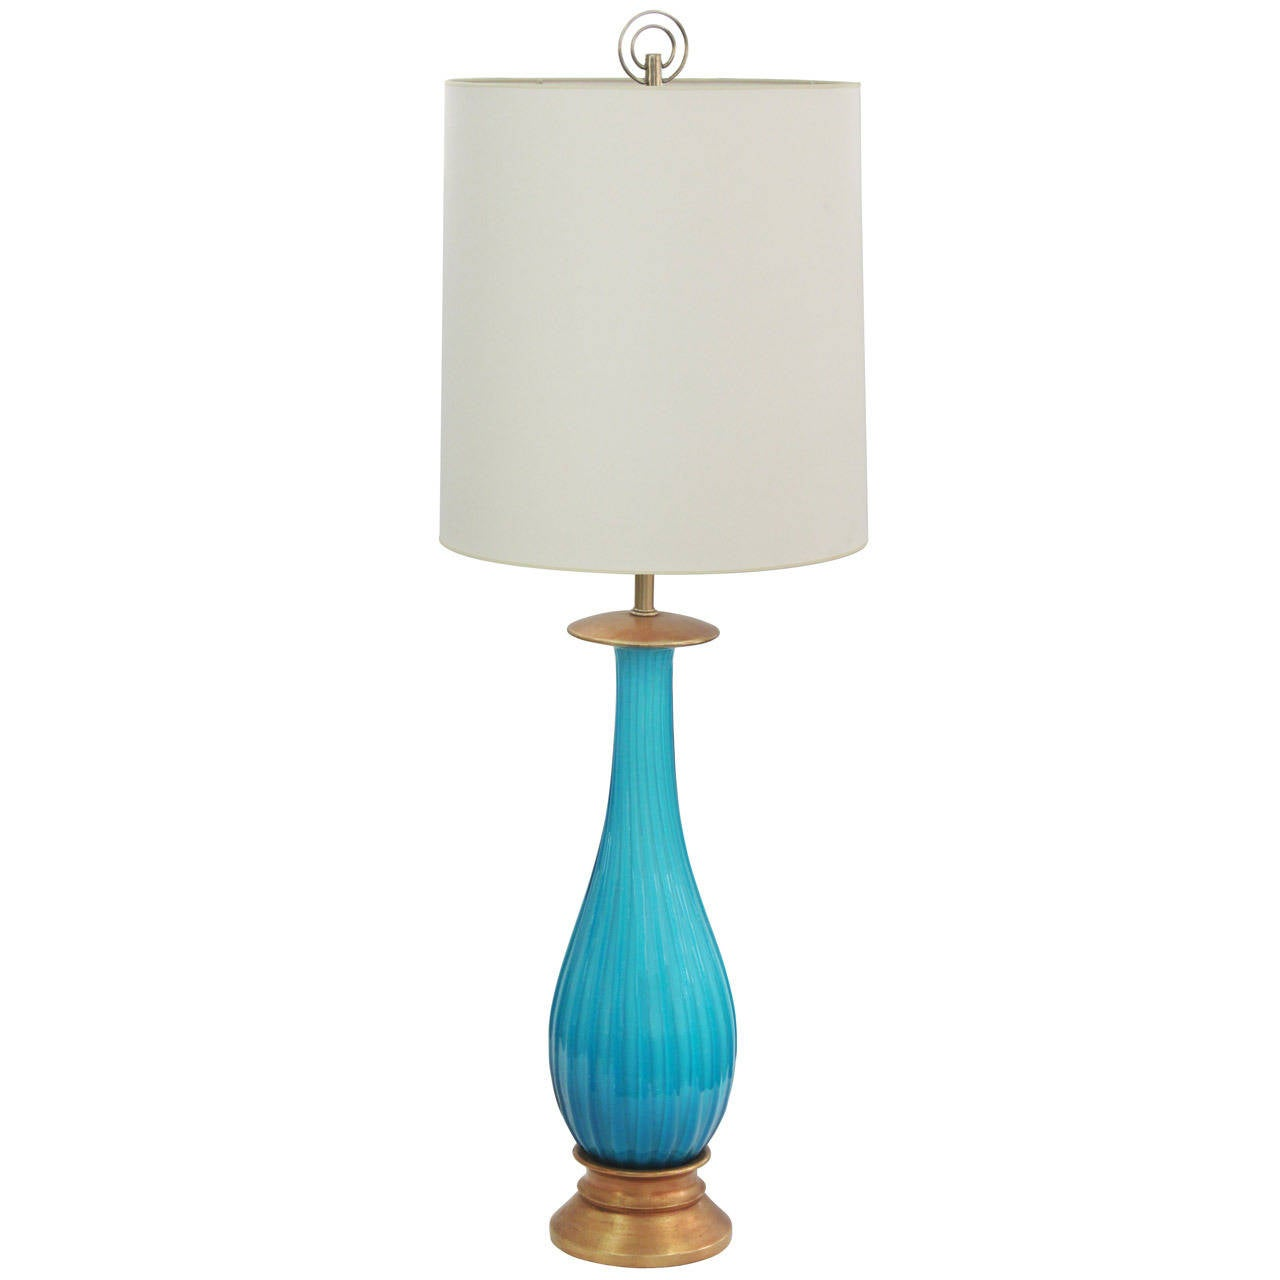 large handblown table lamp in aqua glass by seguso at 1stdibs. Black Bedroom Furniture Sets. Home Design Ideas